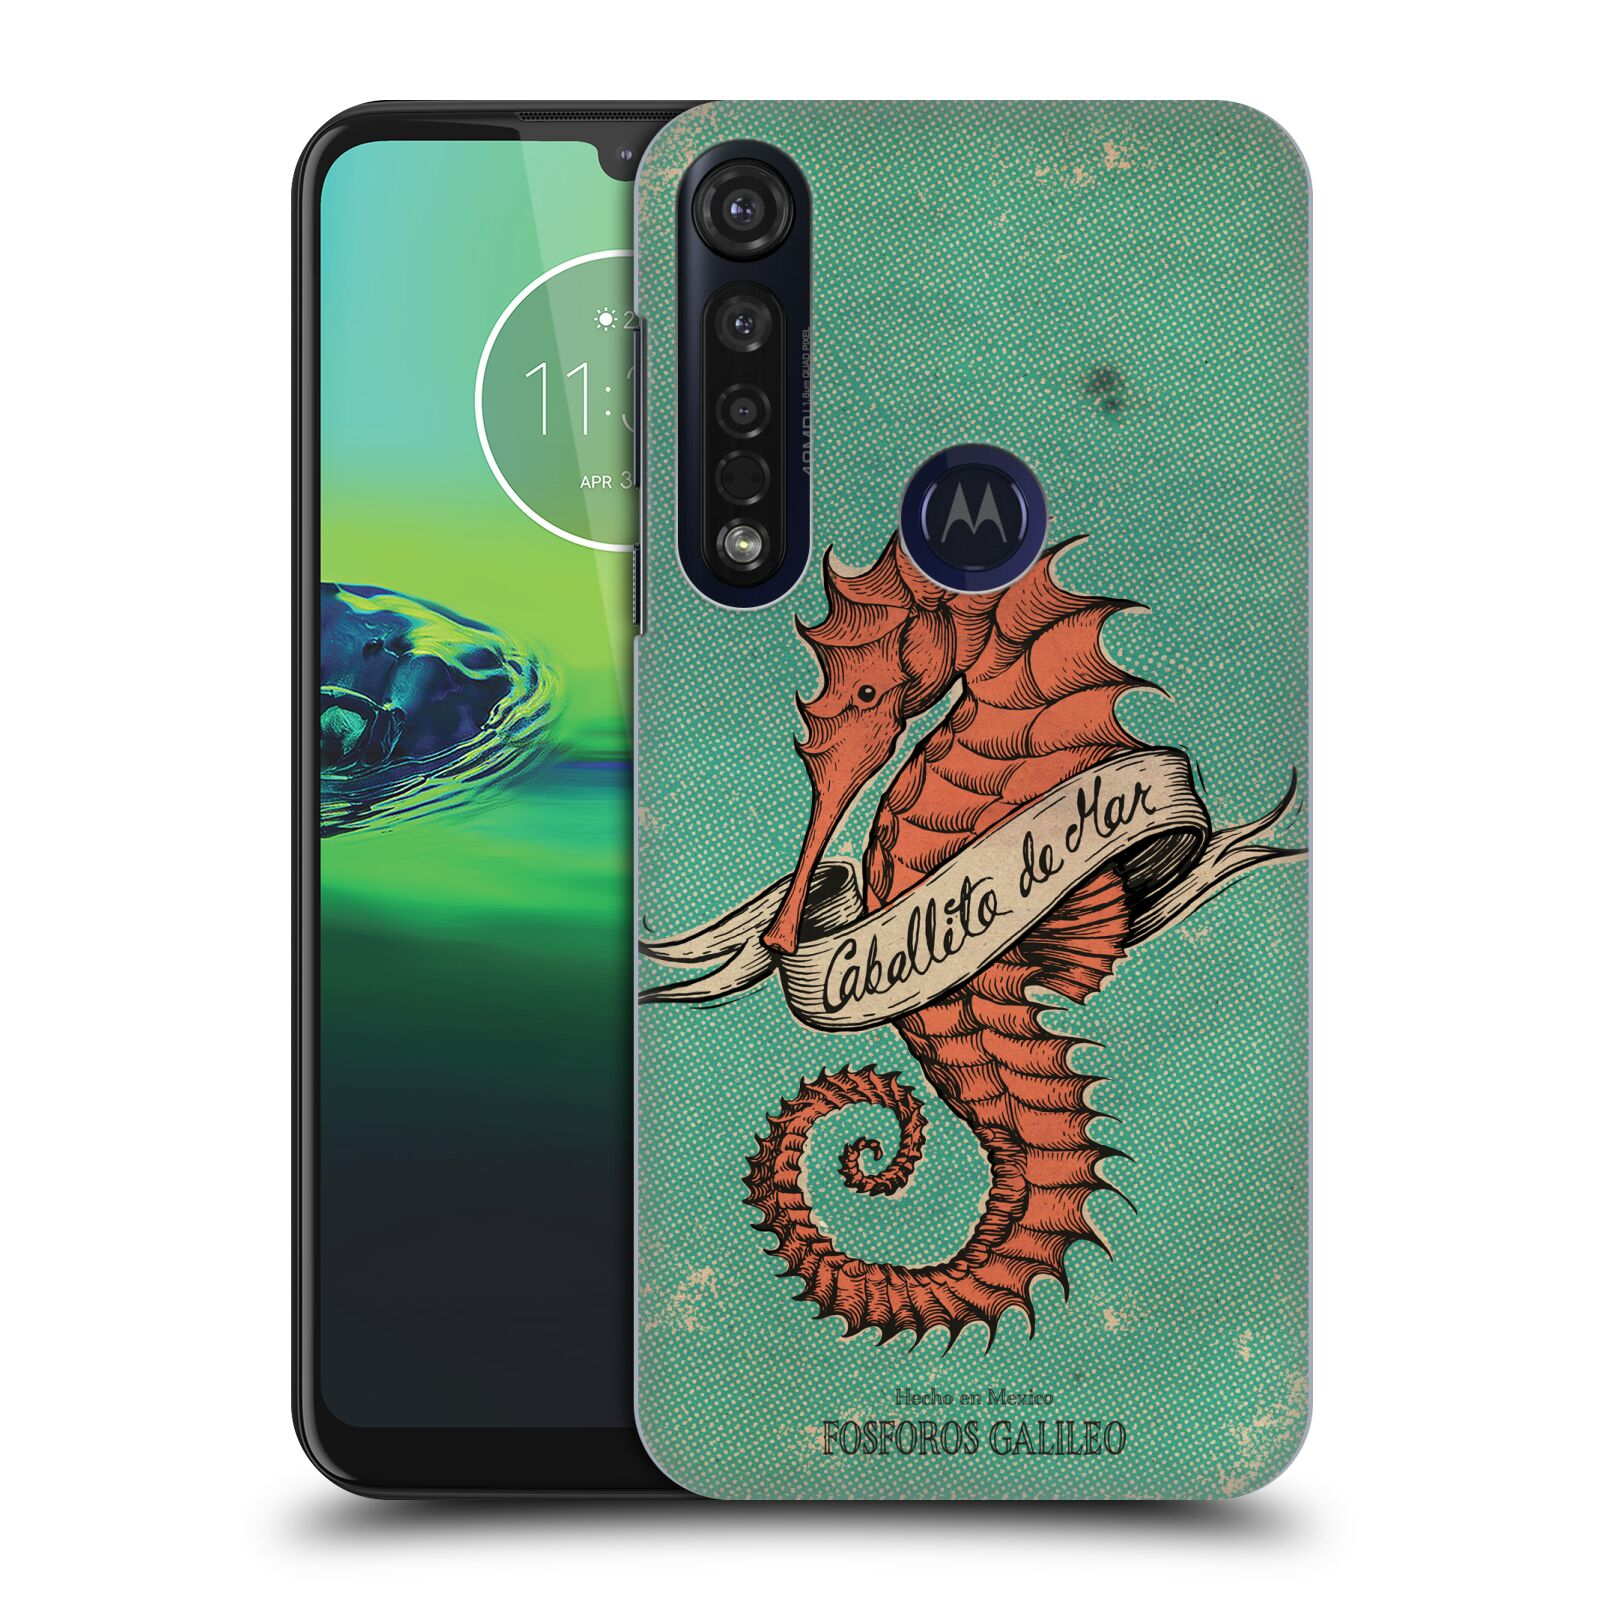 Official Fosforos Galileo Diseños Caballito De Mar Case for Motorola Moto G8 Plus